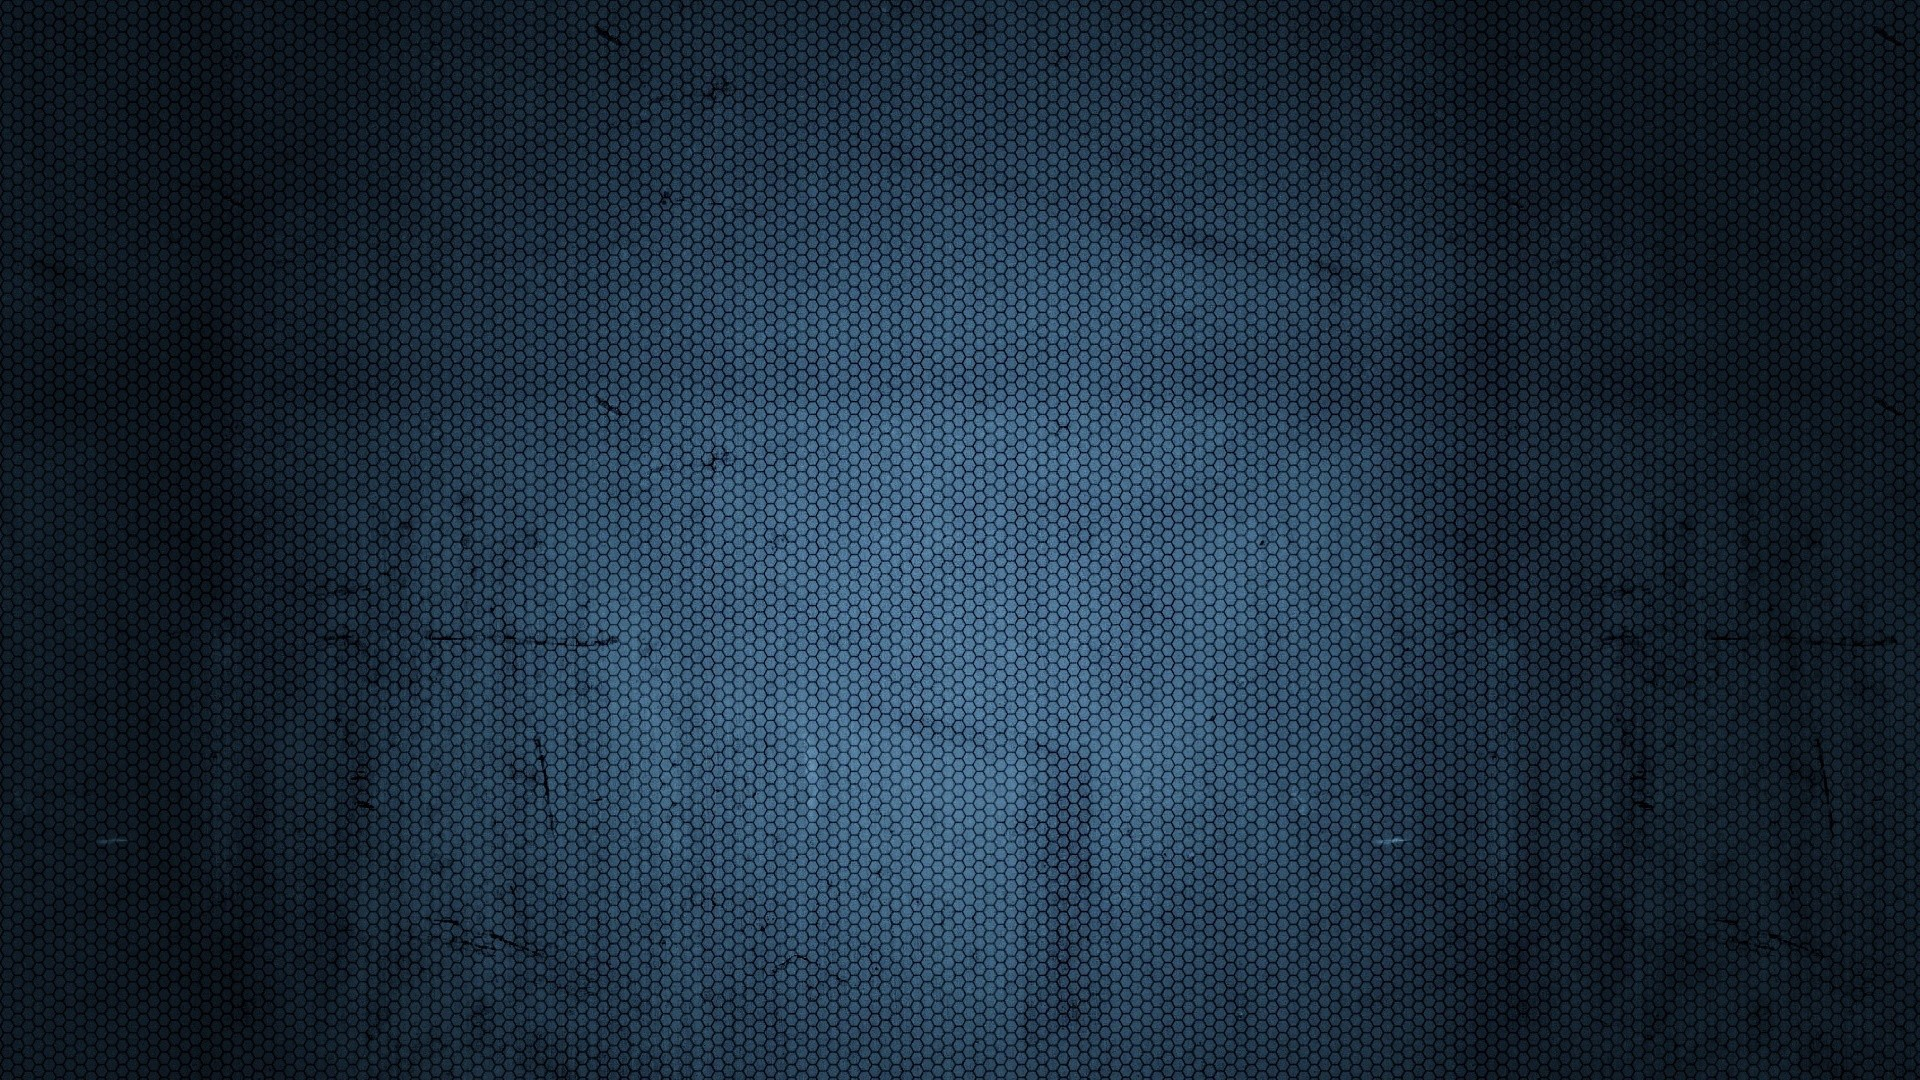 Dark Blue Texture wallpaper   851841 1920x1080